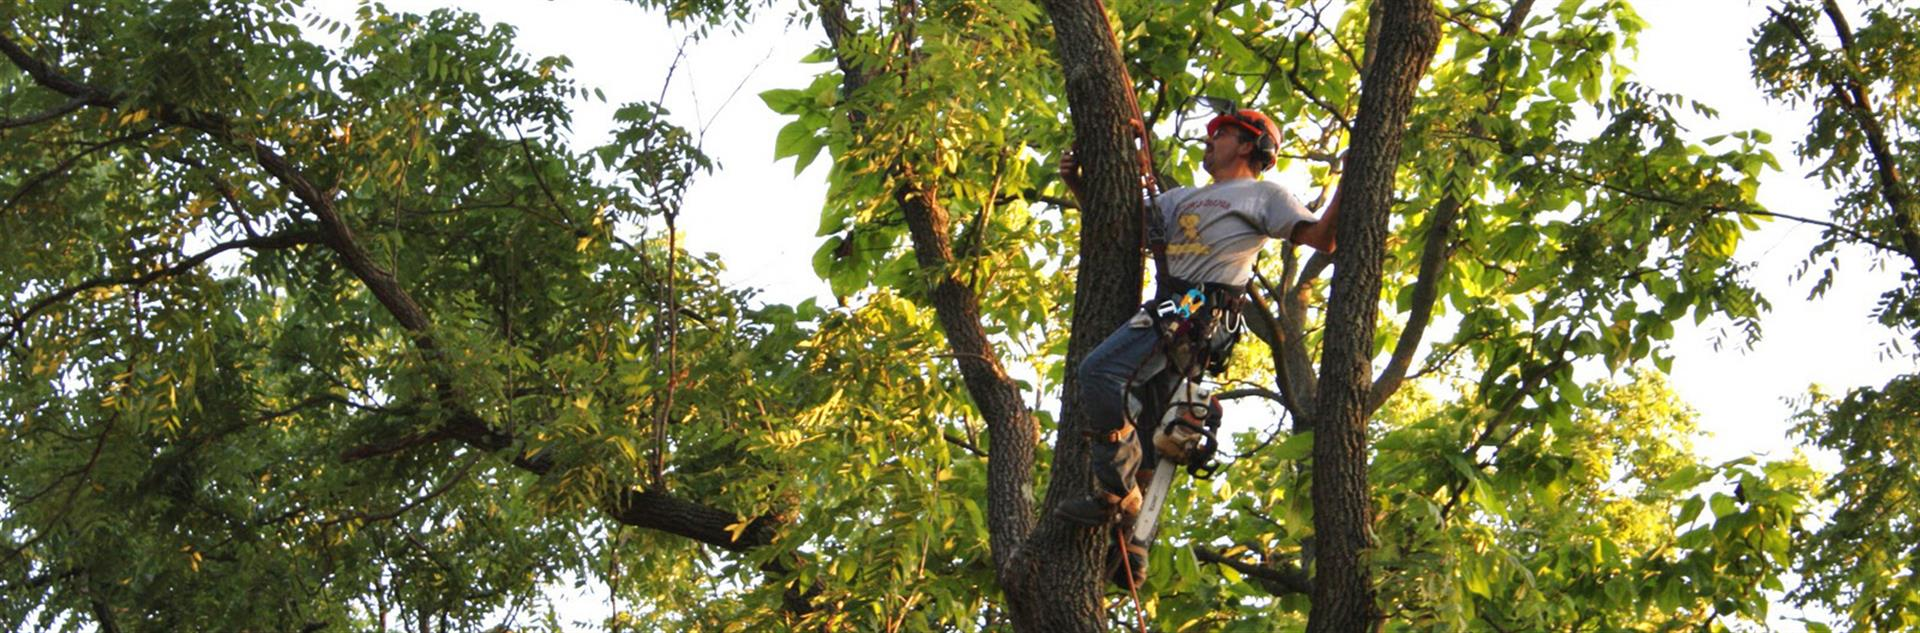 richmond-tree pruning